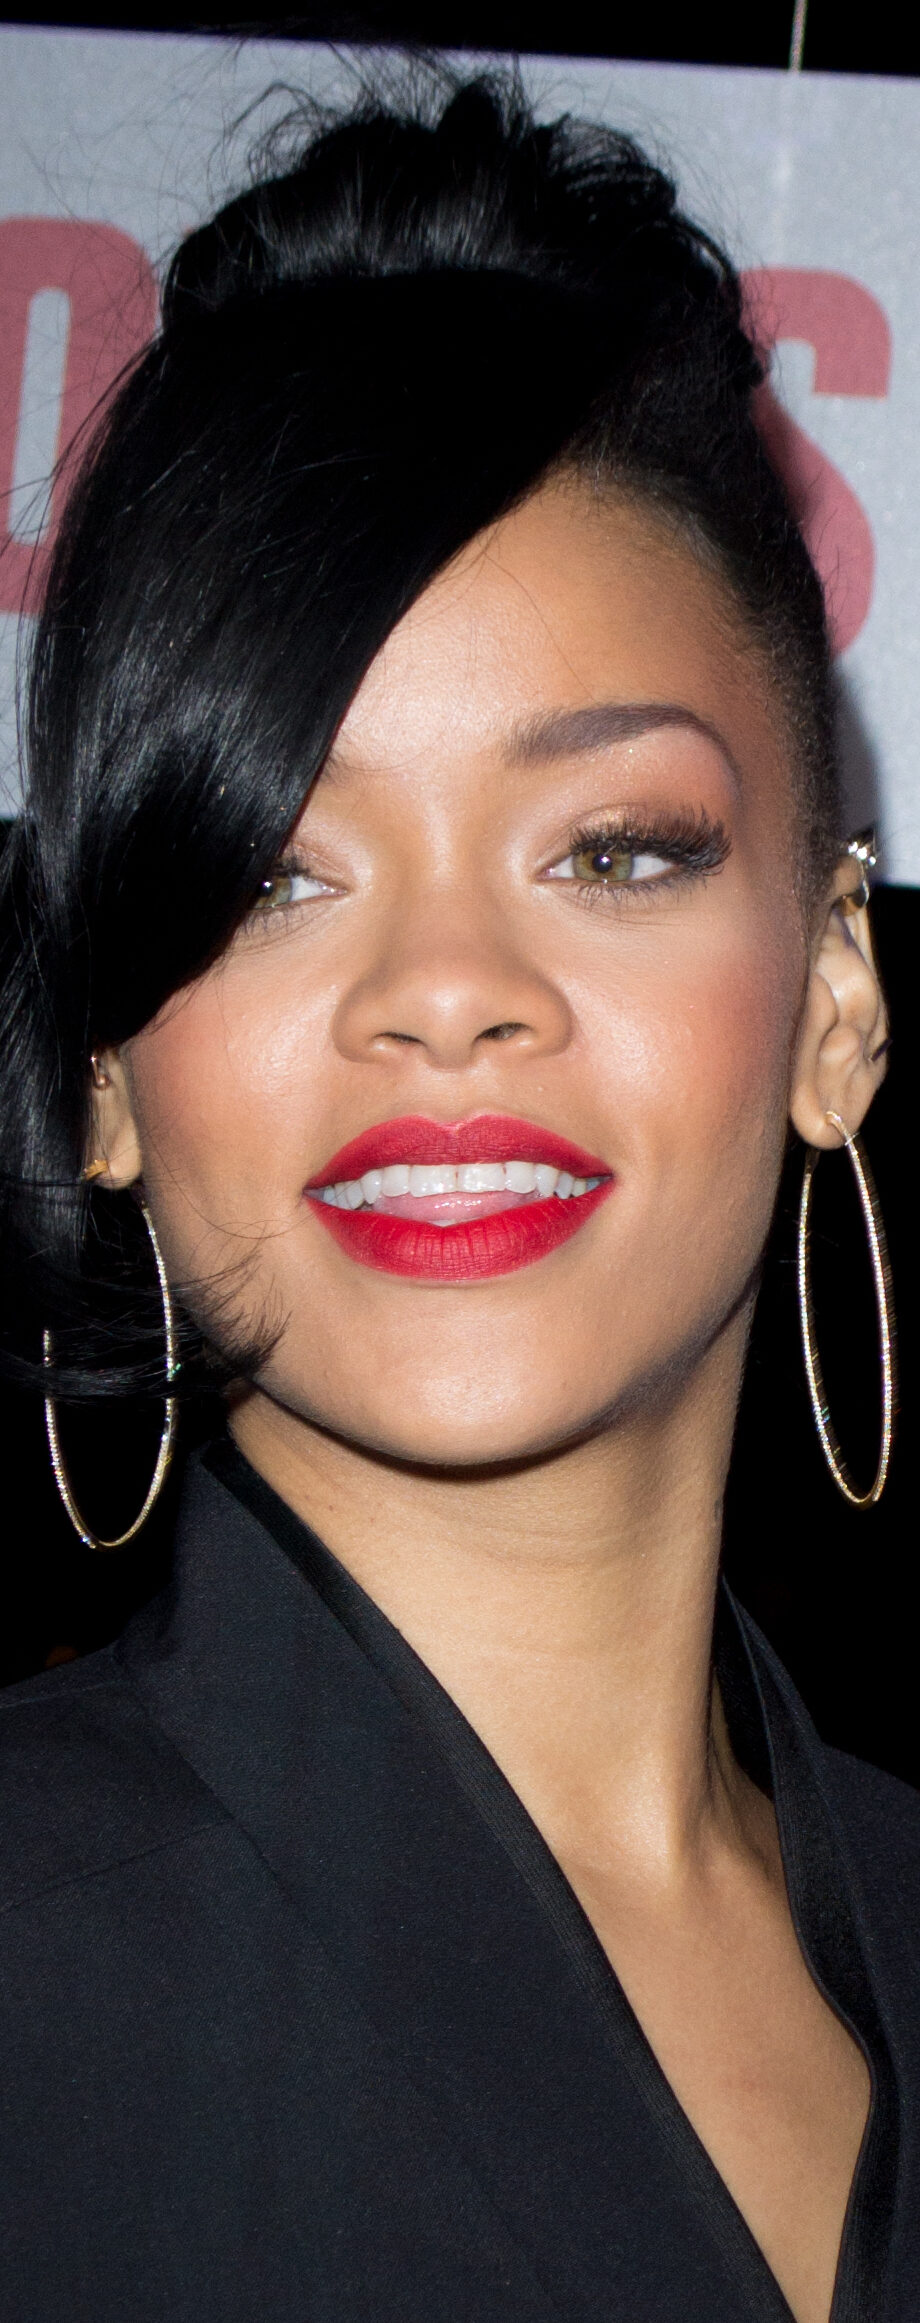 Rihanna is still working on a new reggae album